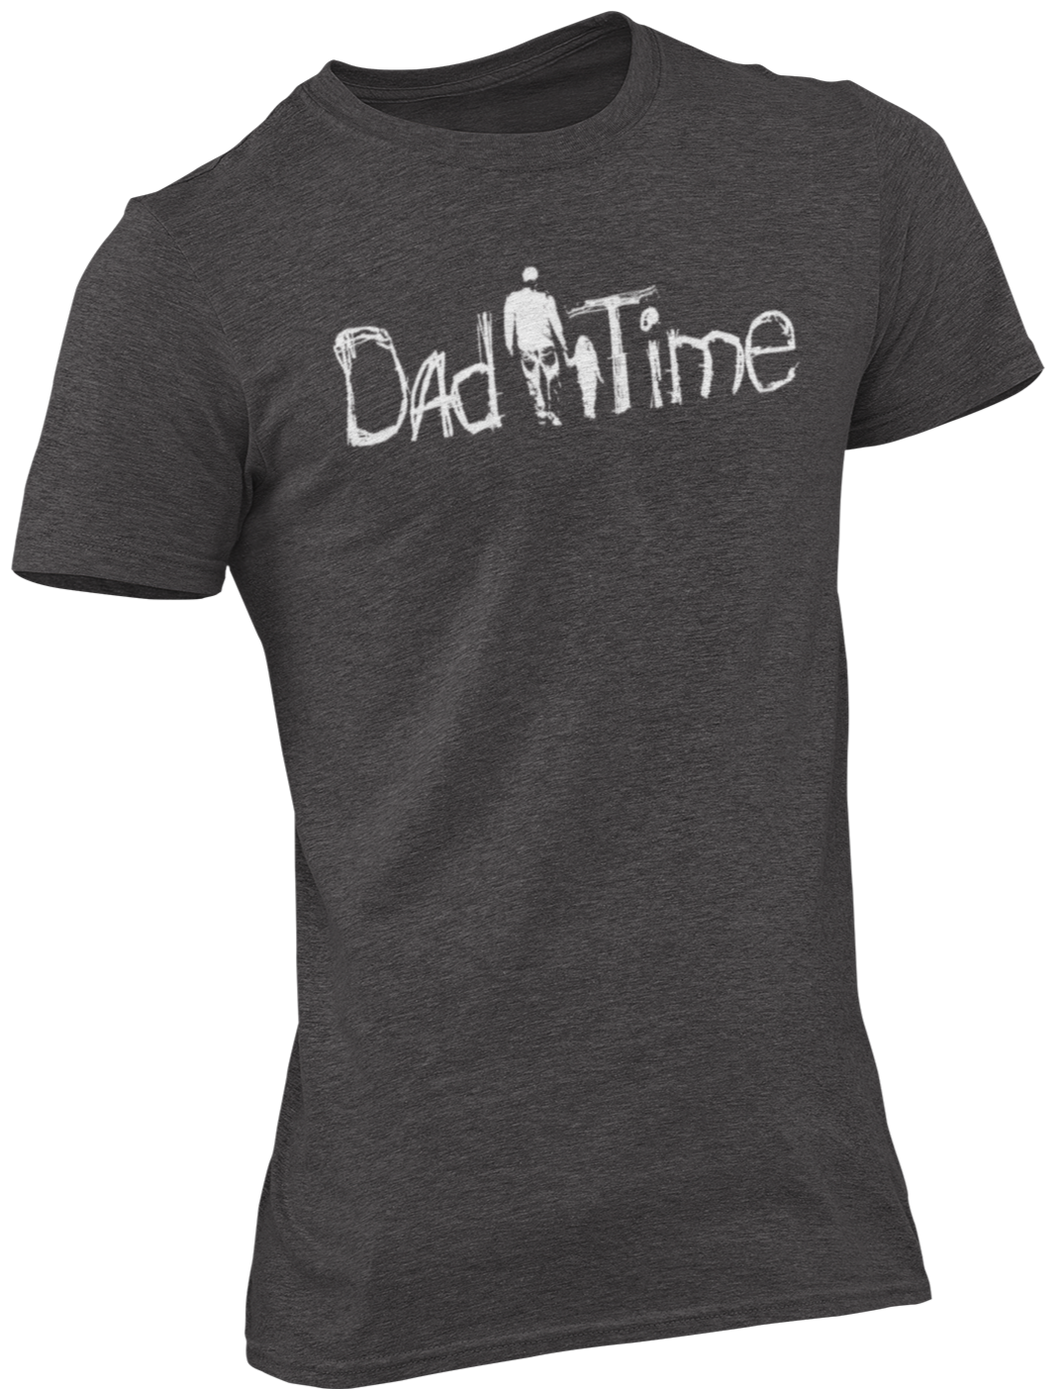 Dad Time Tee - One Girl - DT100